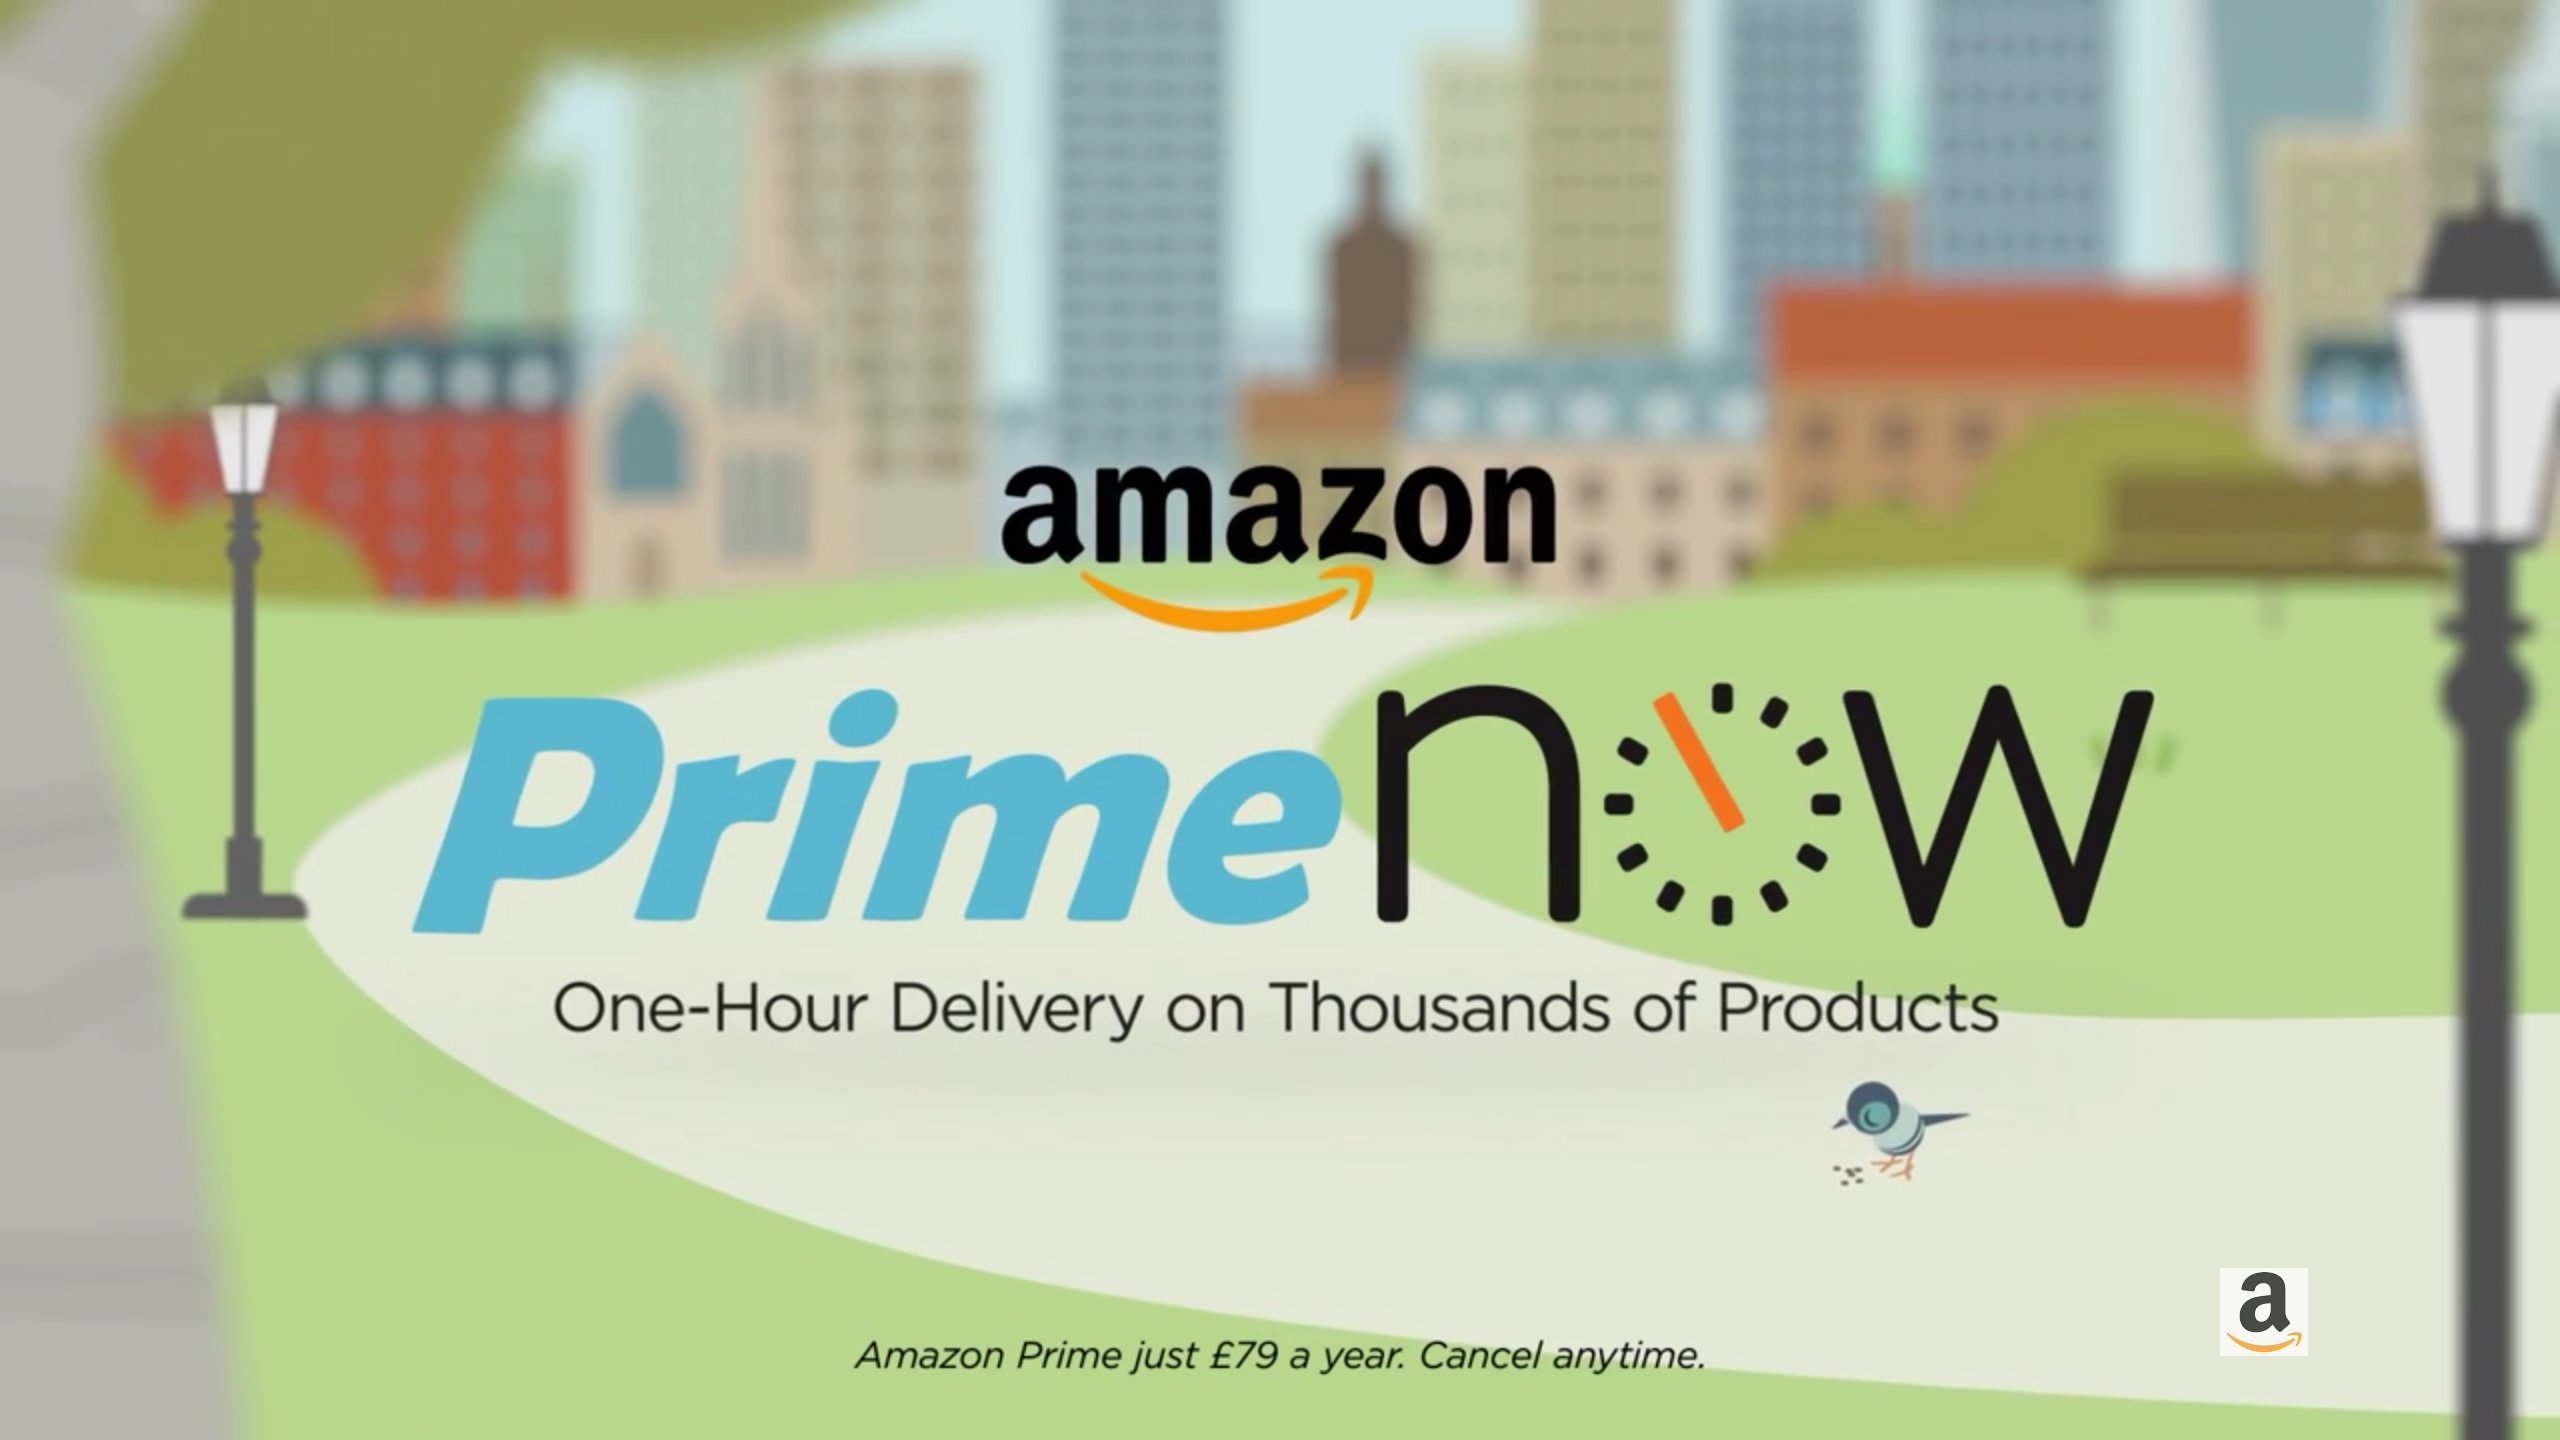 Amazon Expands Its Prime Now Coverage In London